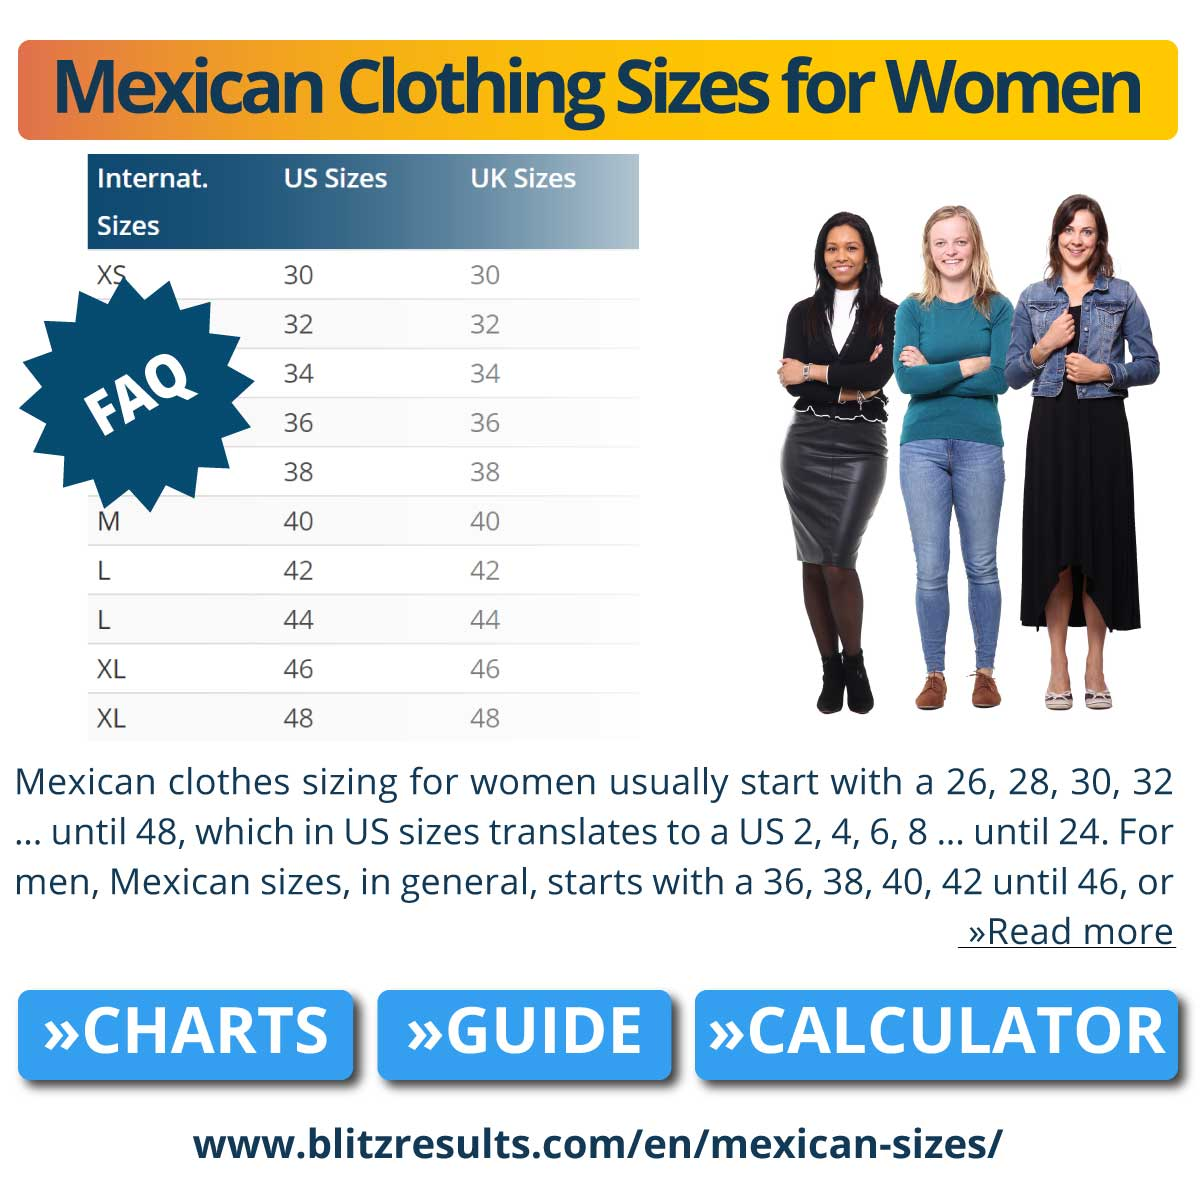 Mexican Clothing Sizes for Women